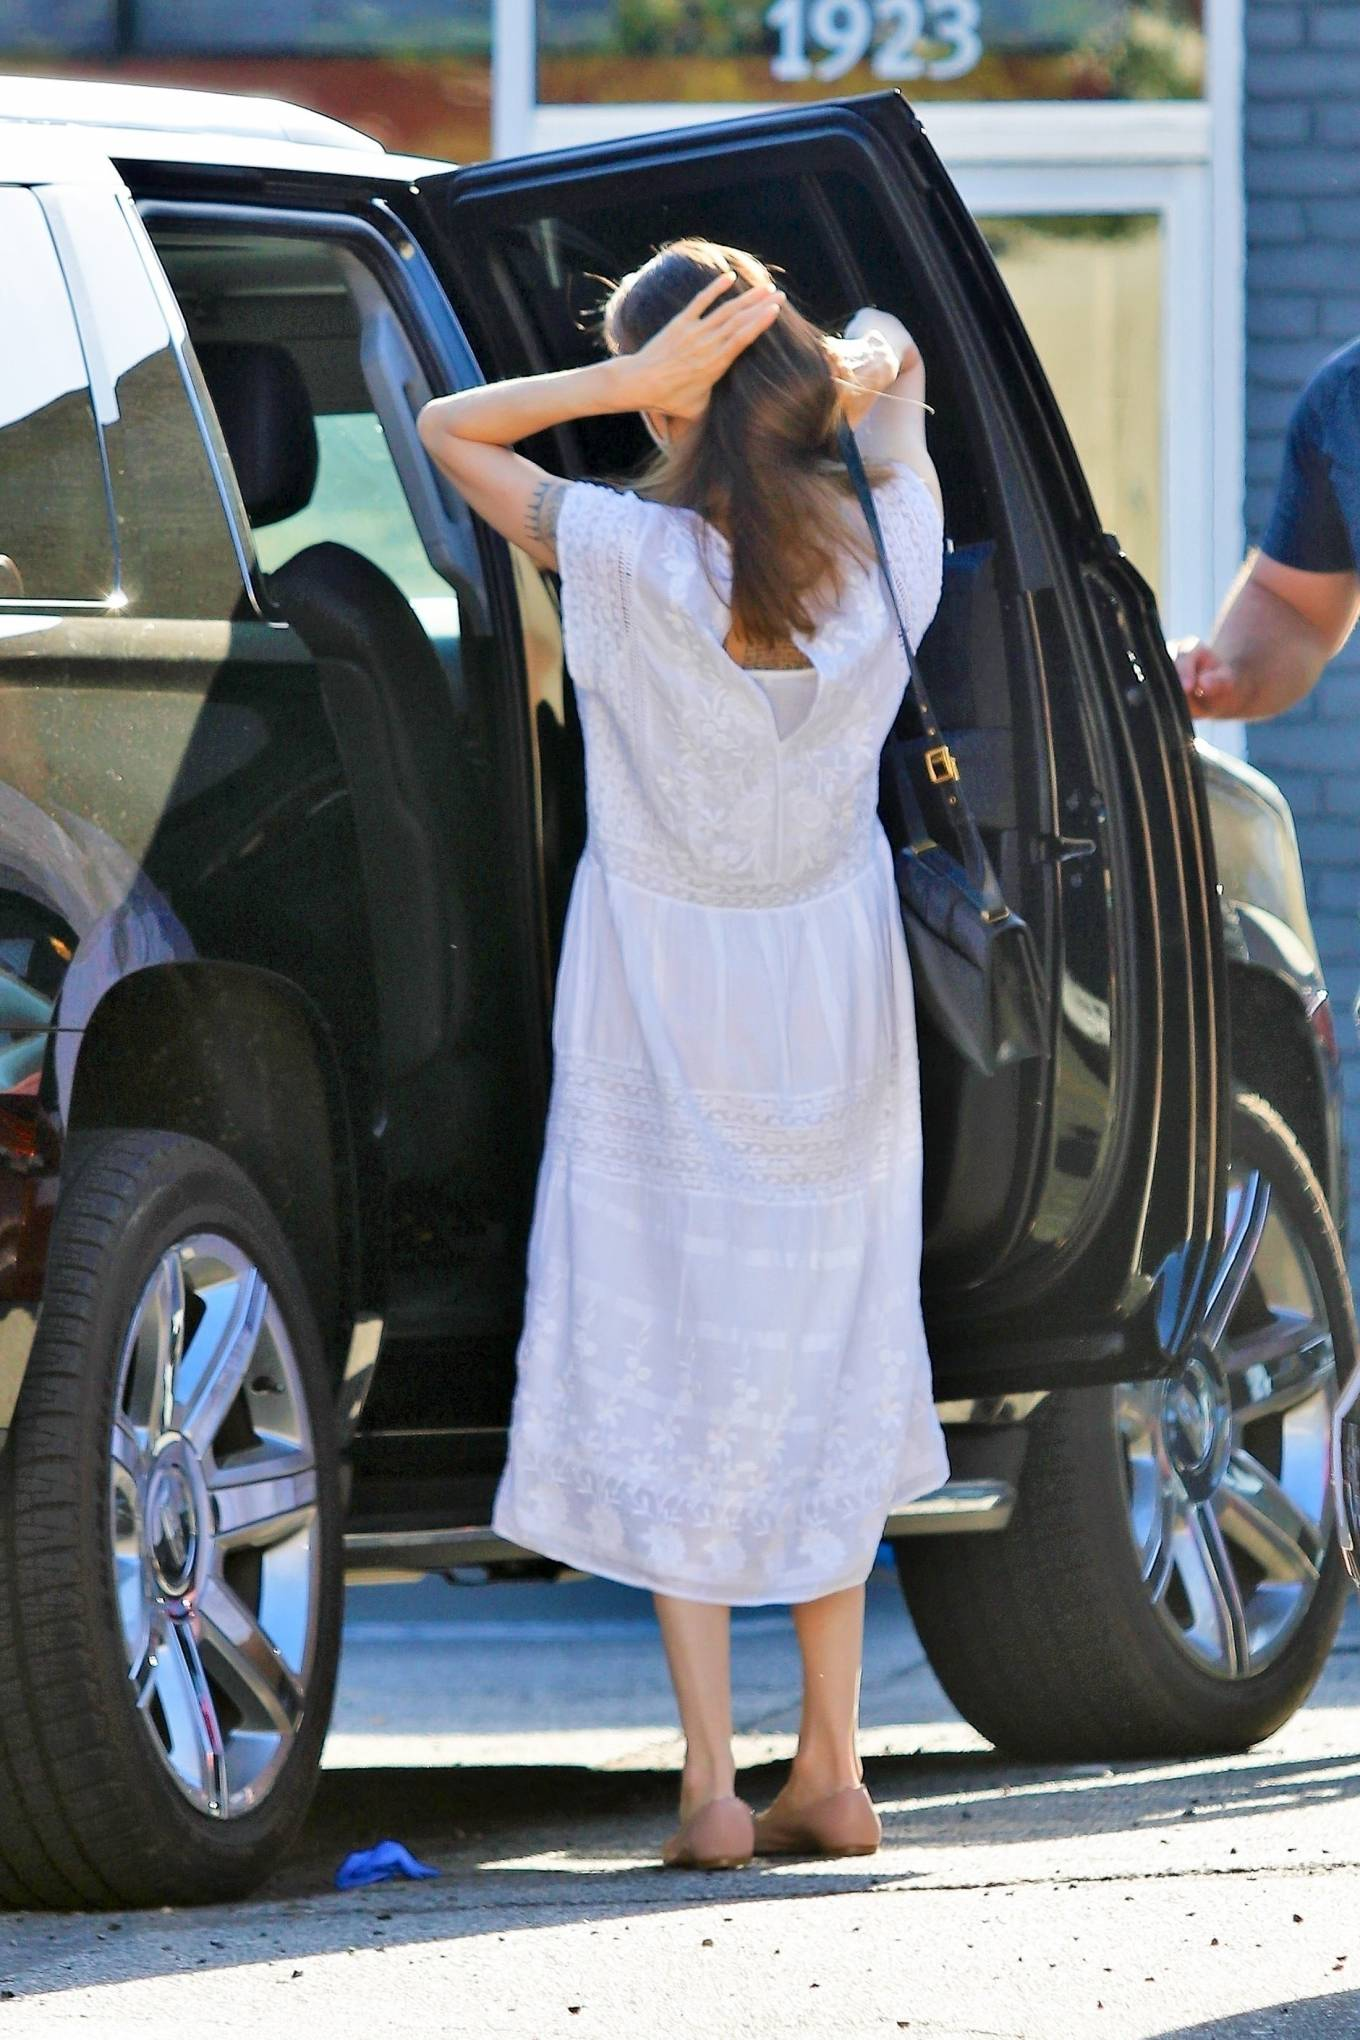 Angelina Jolie, Nude mules, leather, white dress, black purse, flat heel, round. Angelina Jolie donning round Nude leather mules with flat heel